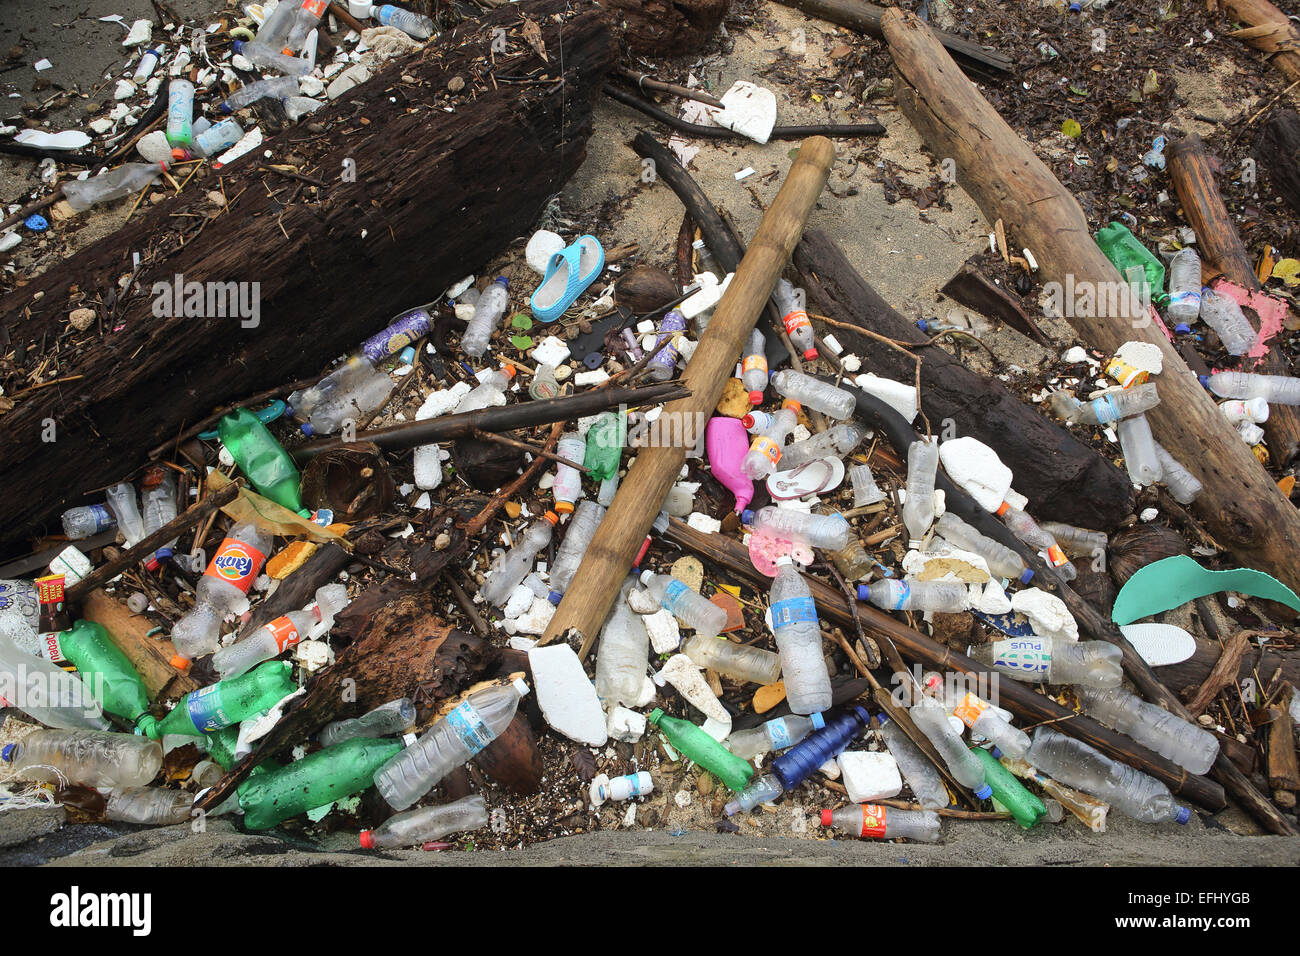 Plastic bottles and other trash polluting beach on Bunaken Island, Sulawesi - Stock Image